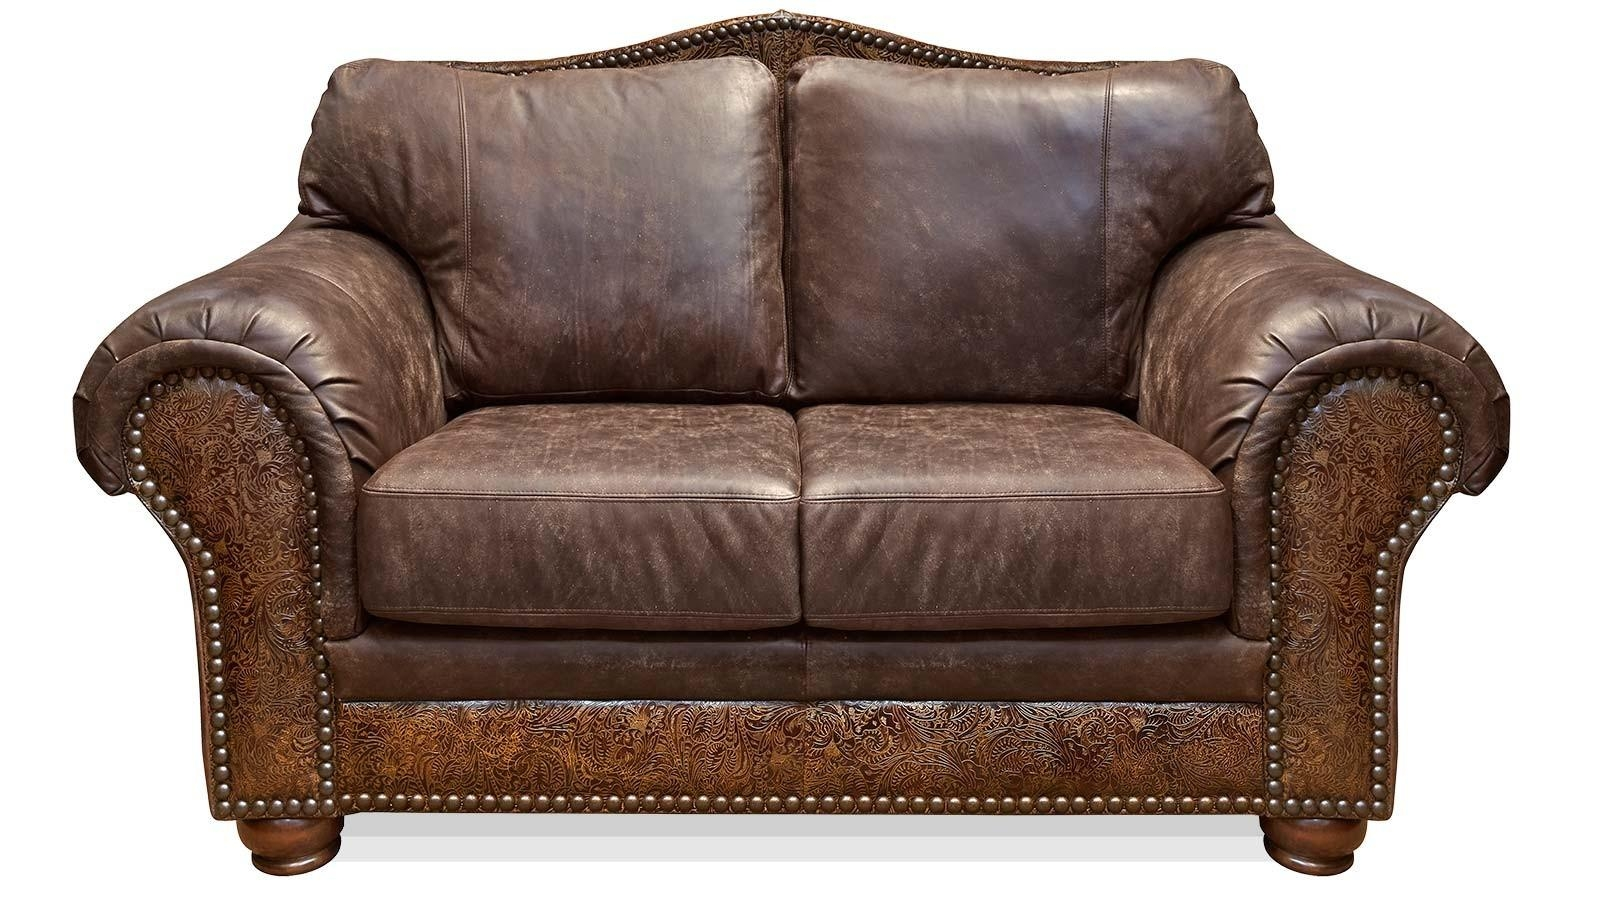 Sofas Center : Distressed Leather Sofa And Recliner Sectional Set For Sofas For Dogs (Image 13 of 20)